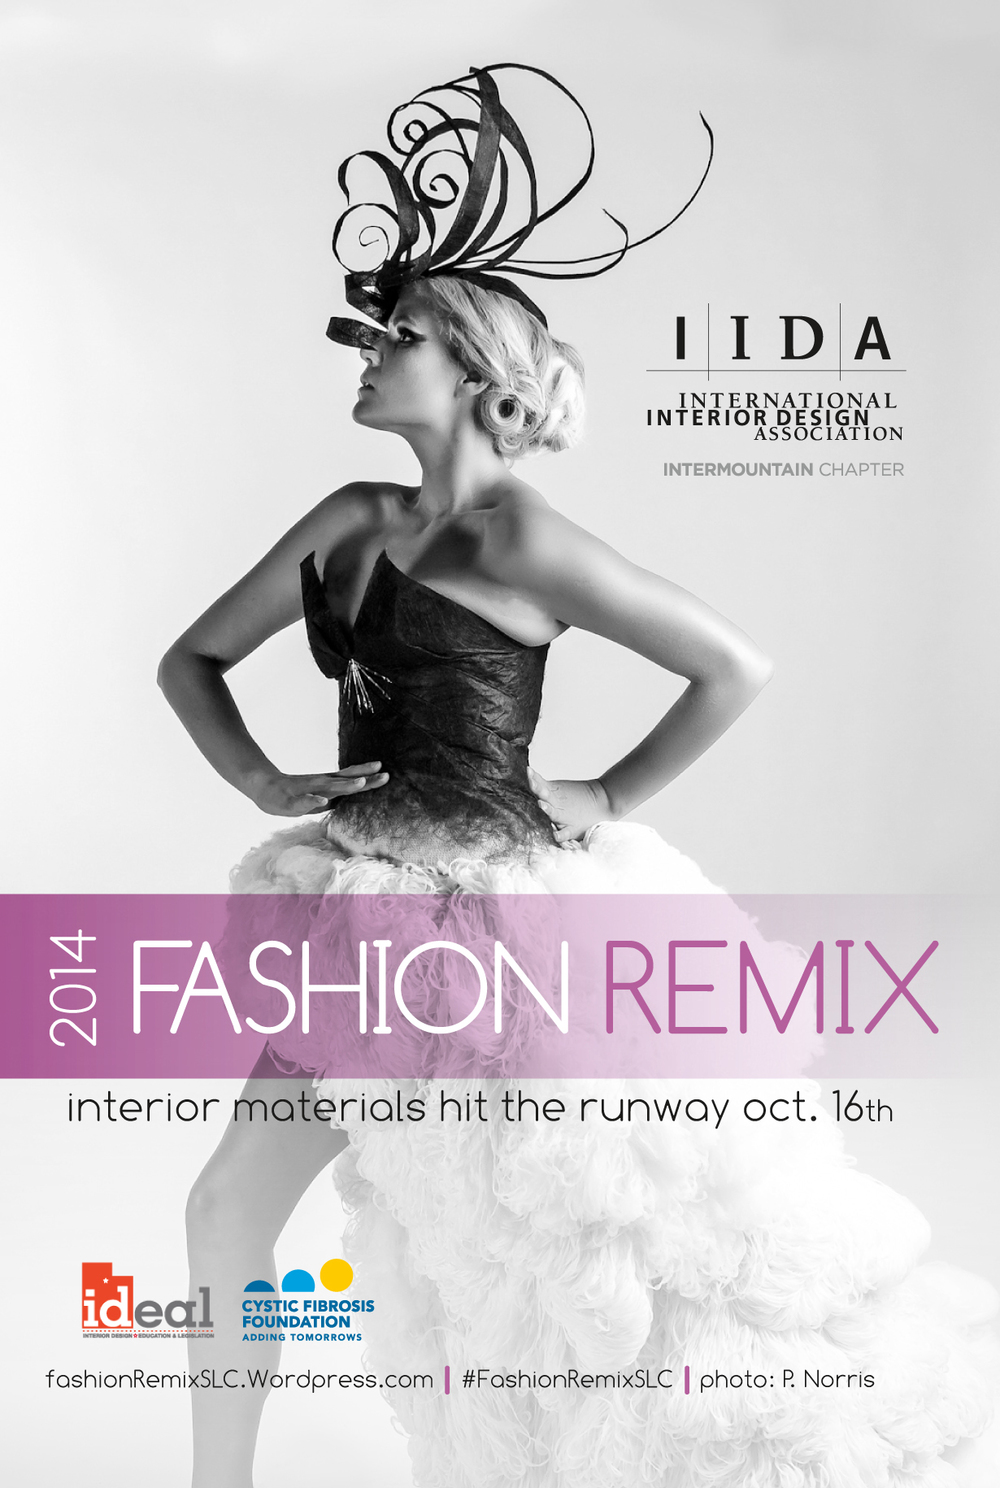 fashion remix 2014 rail event center salt lake city